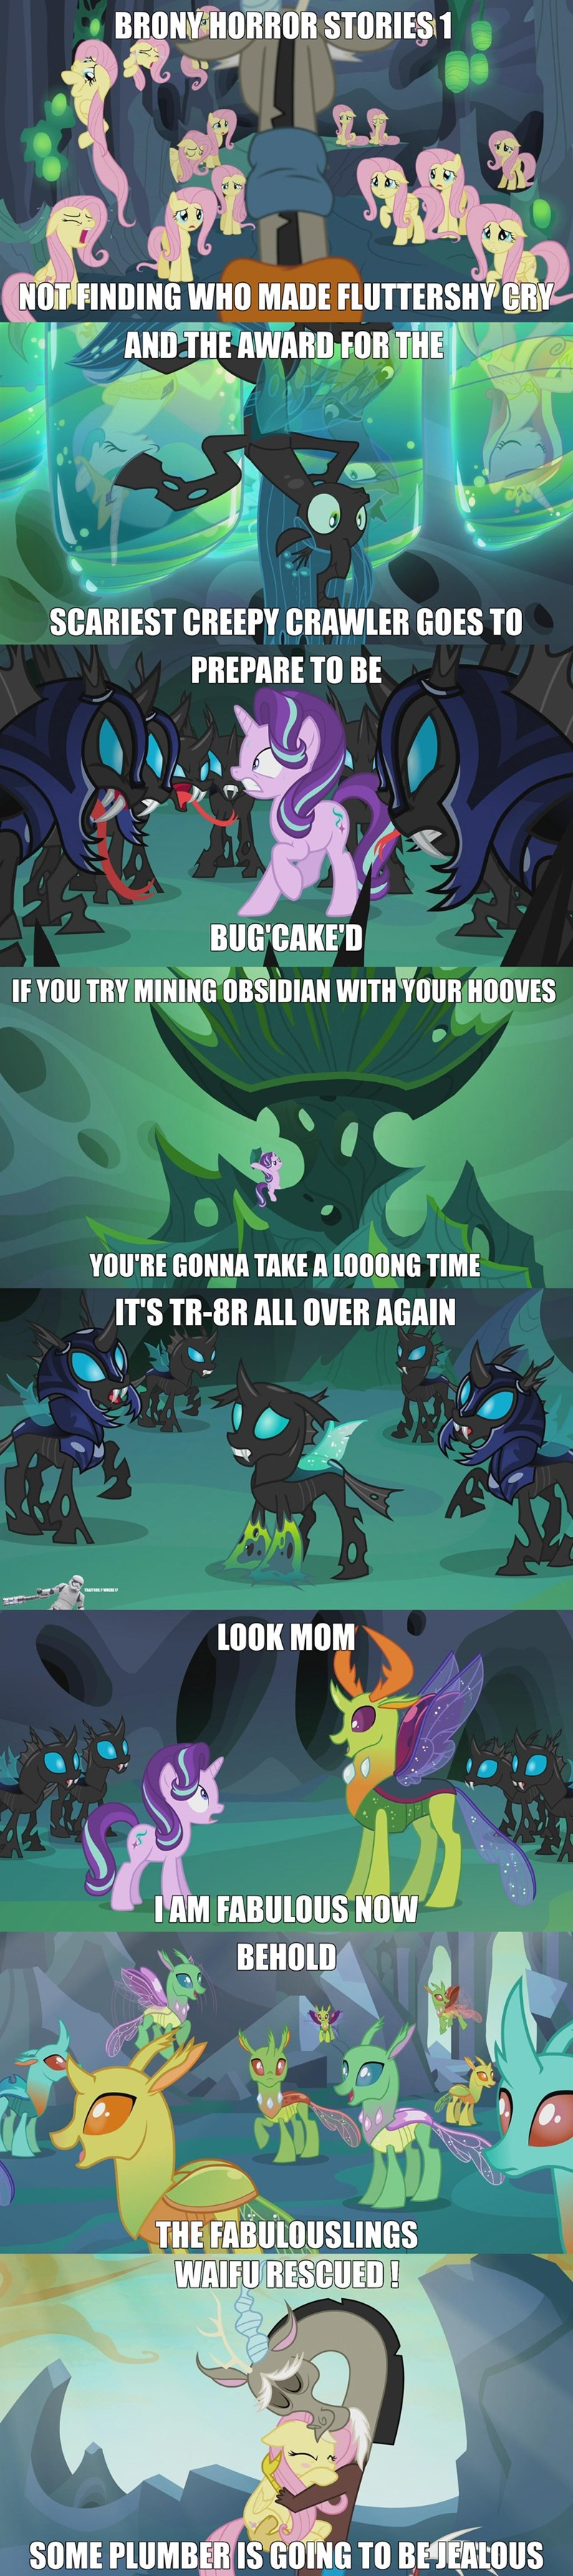 thorax discord starlight glimmer Memes chrysalis to where and back again fluttershy changelings - 8986434560